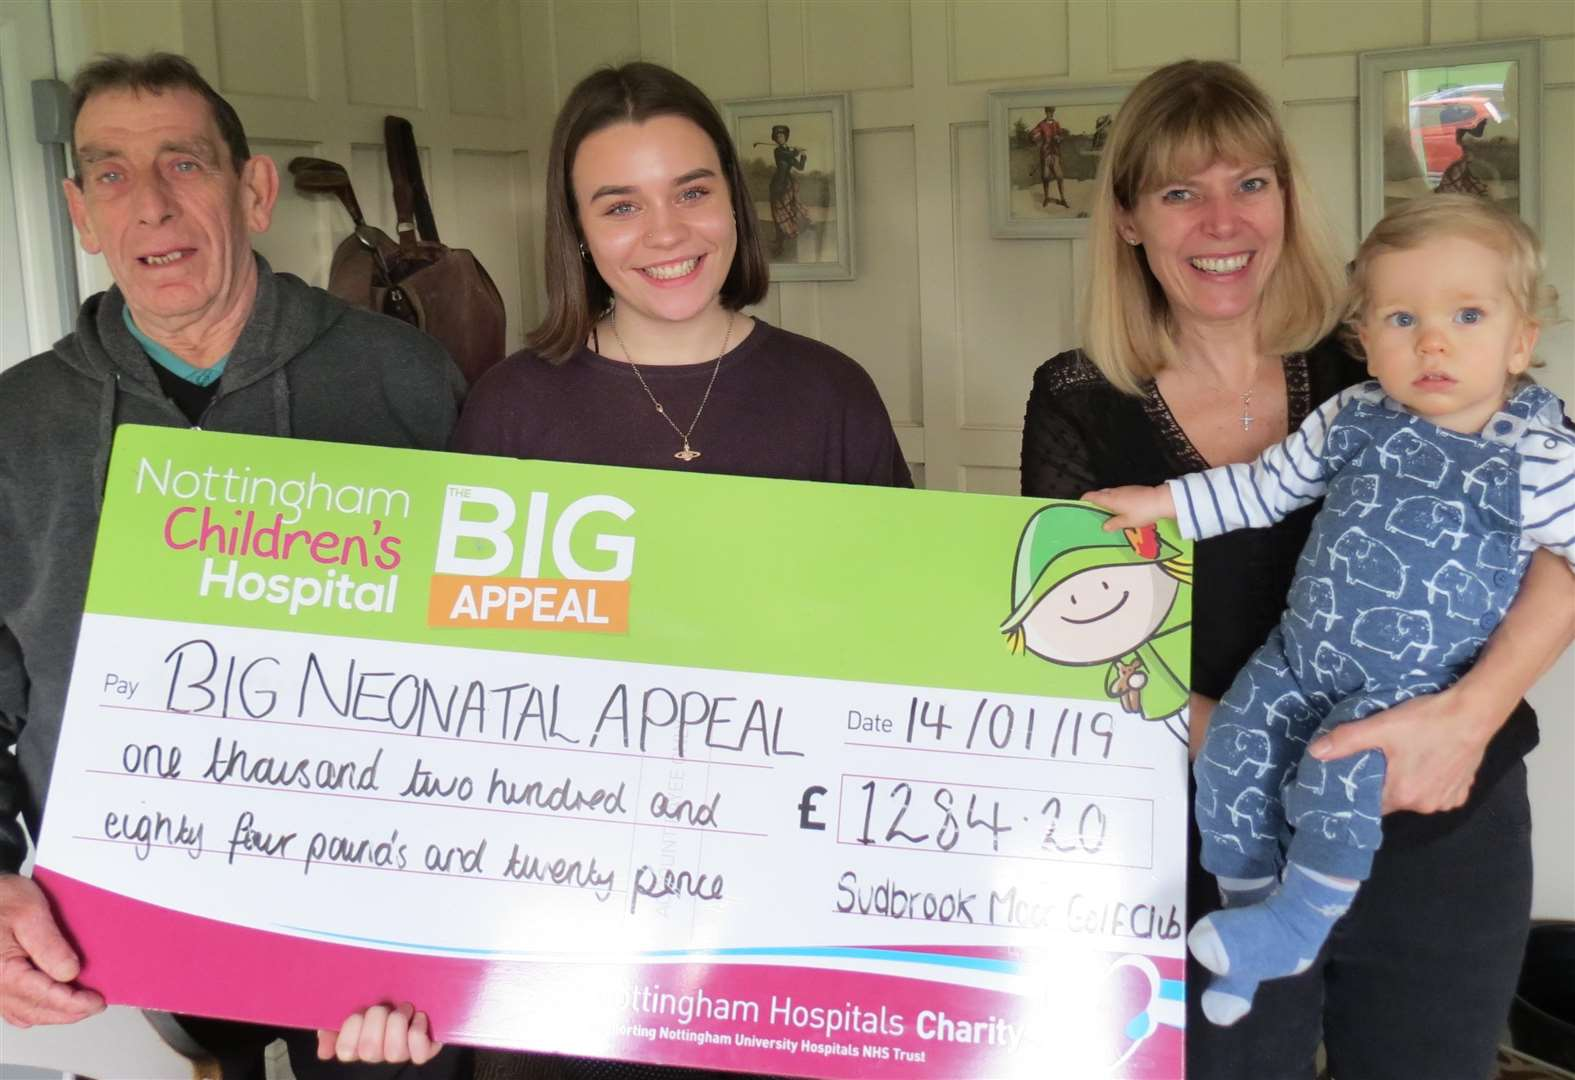 Sudbrook Moor senior captain Mick presents cheque to Nottingham hospital baby unit